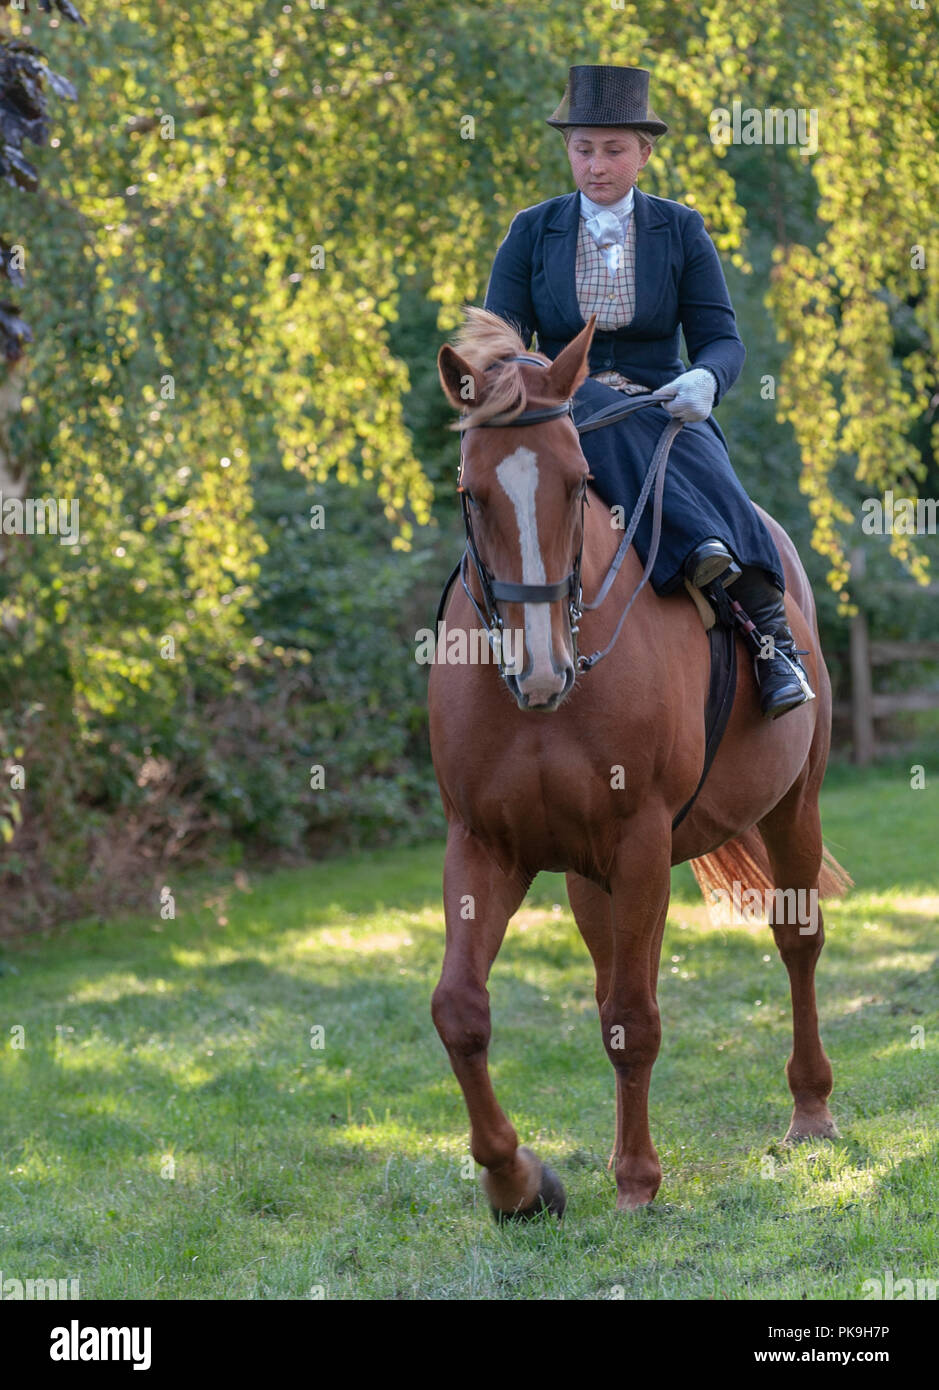 An elegent young lady riding in a traditional side saddle wearing top hat and face veil - Stock Image